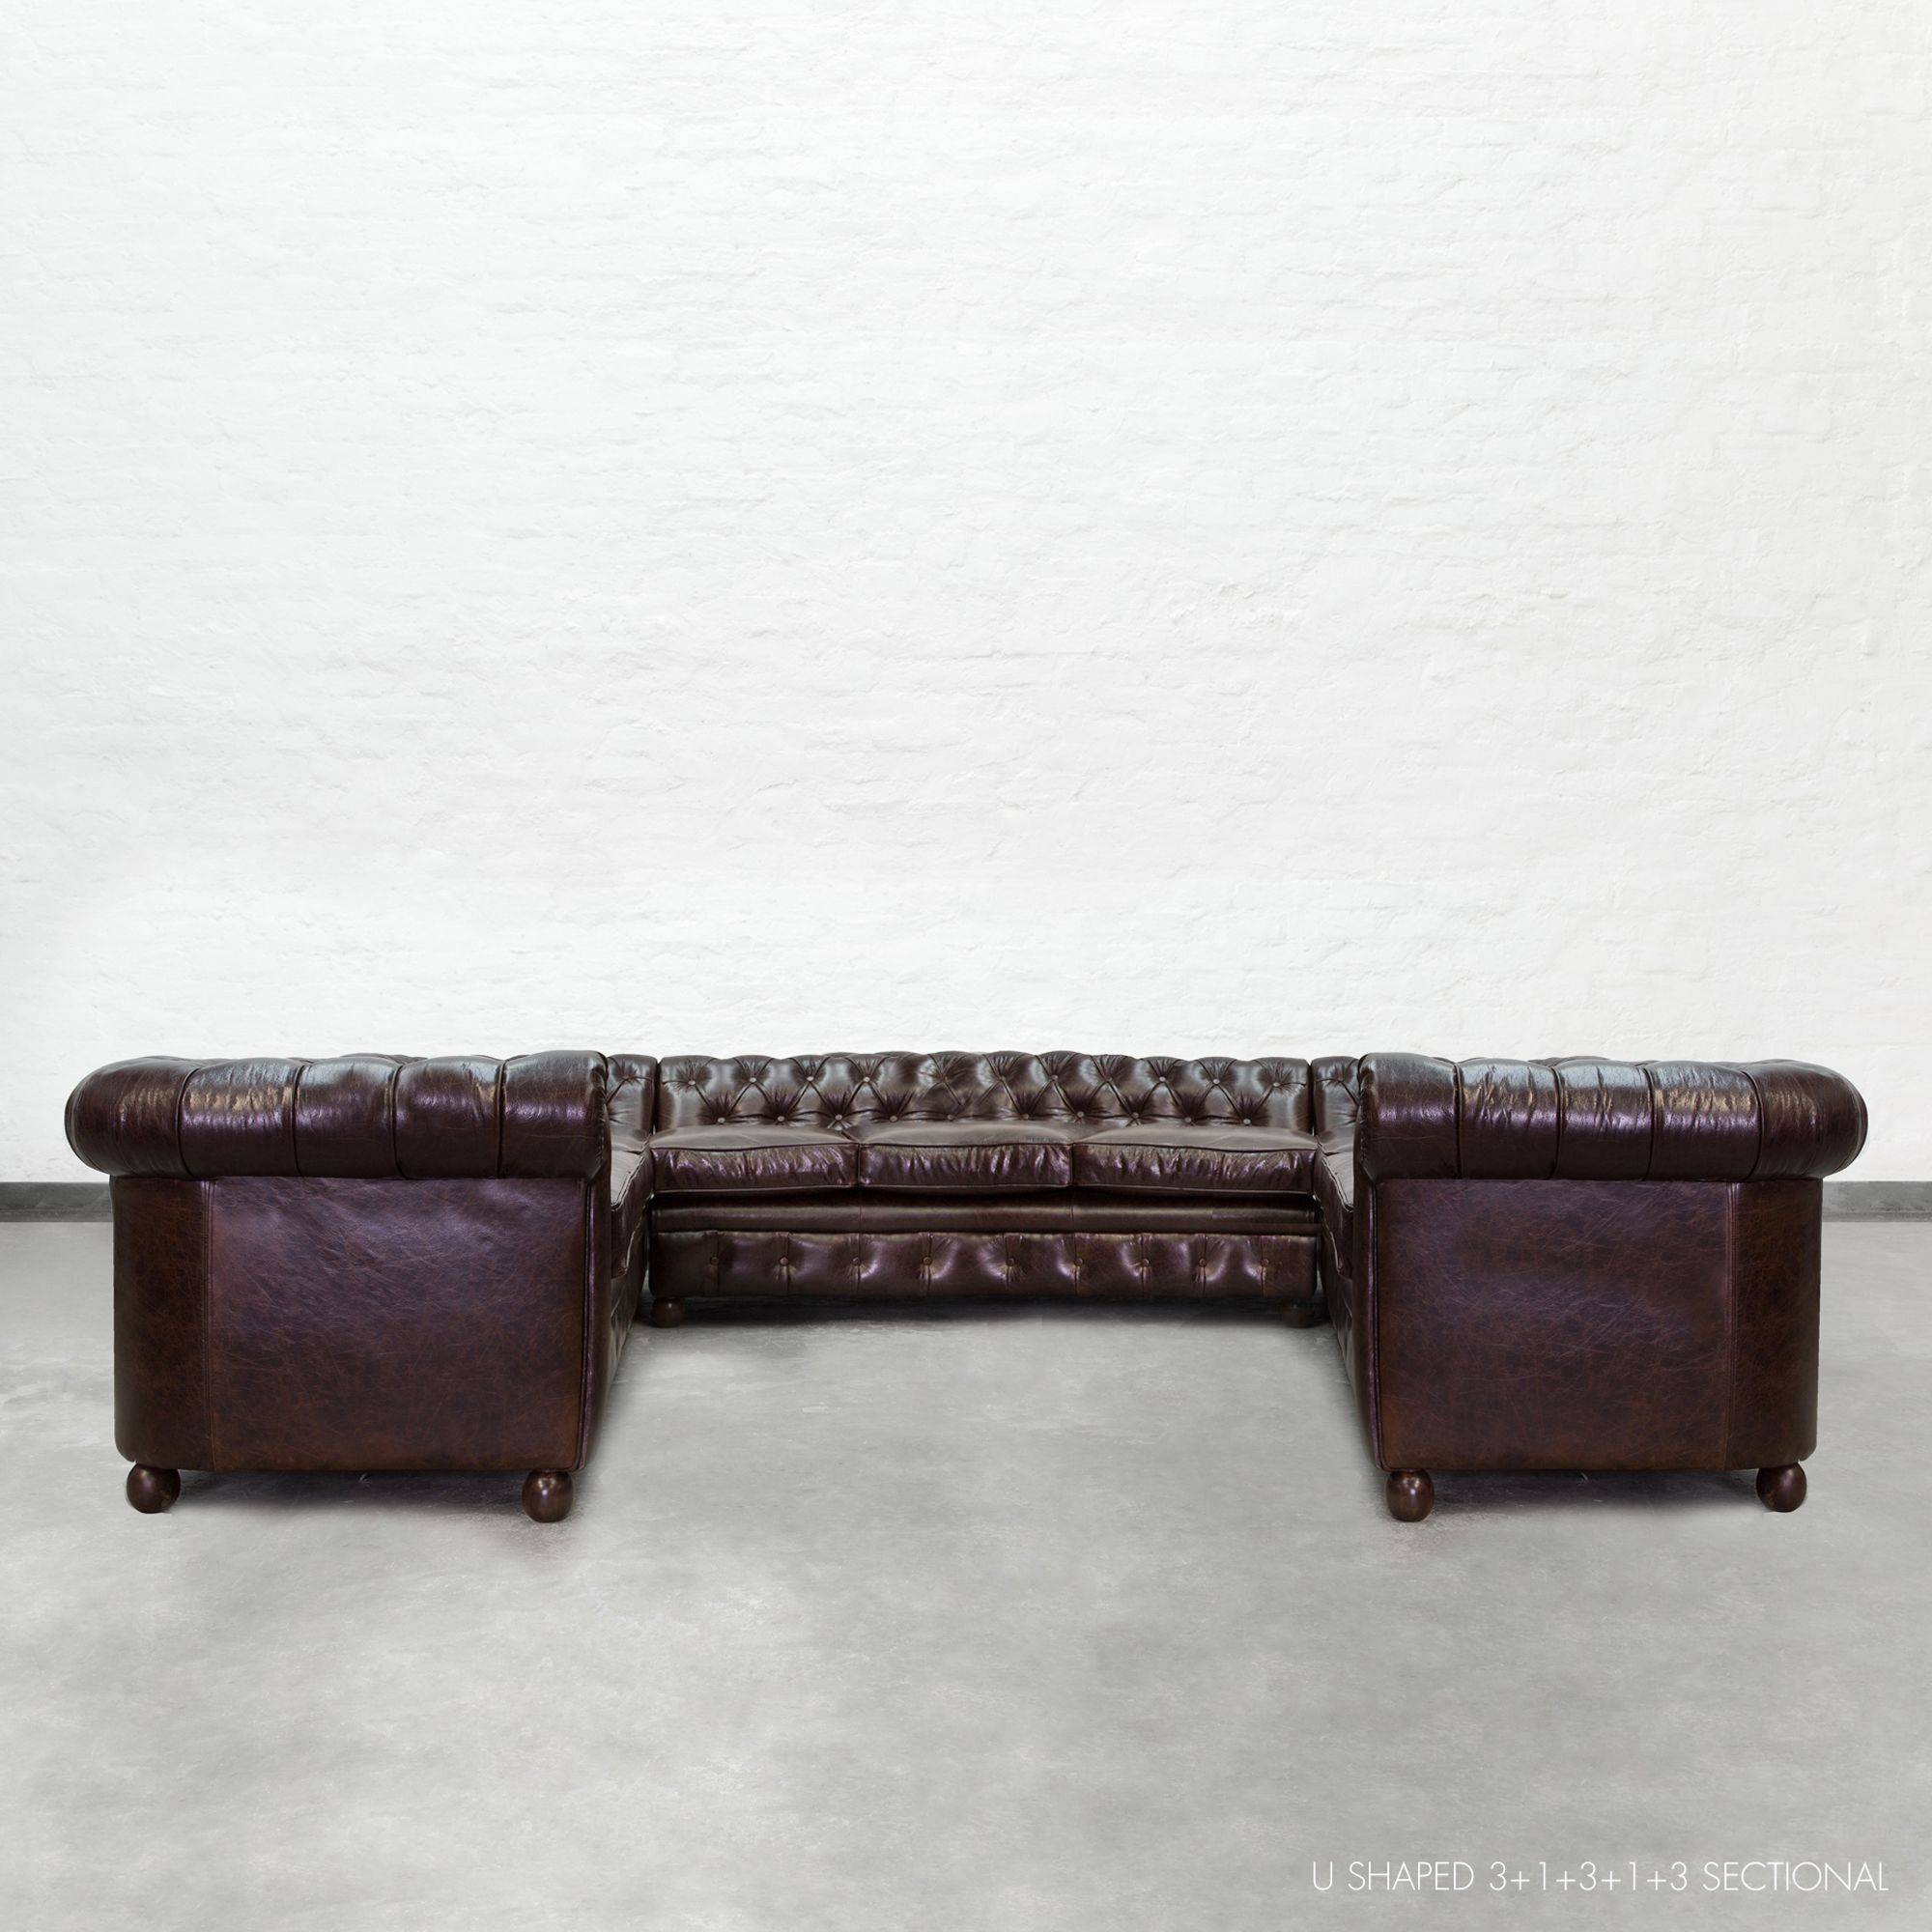 u shaped chesterfield sectional large